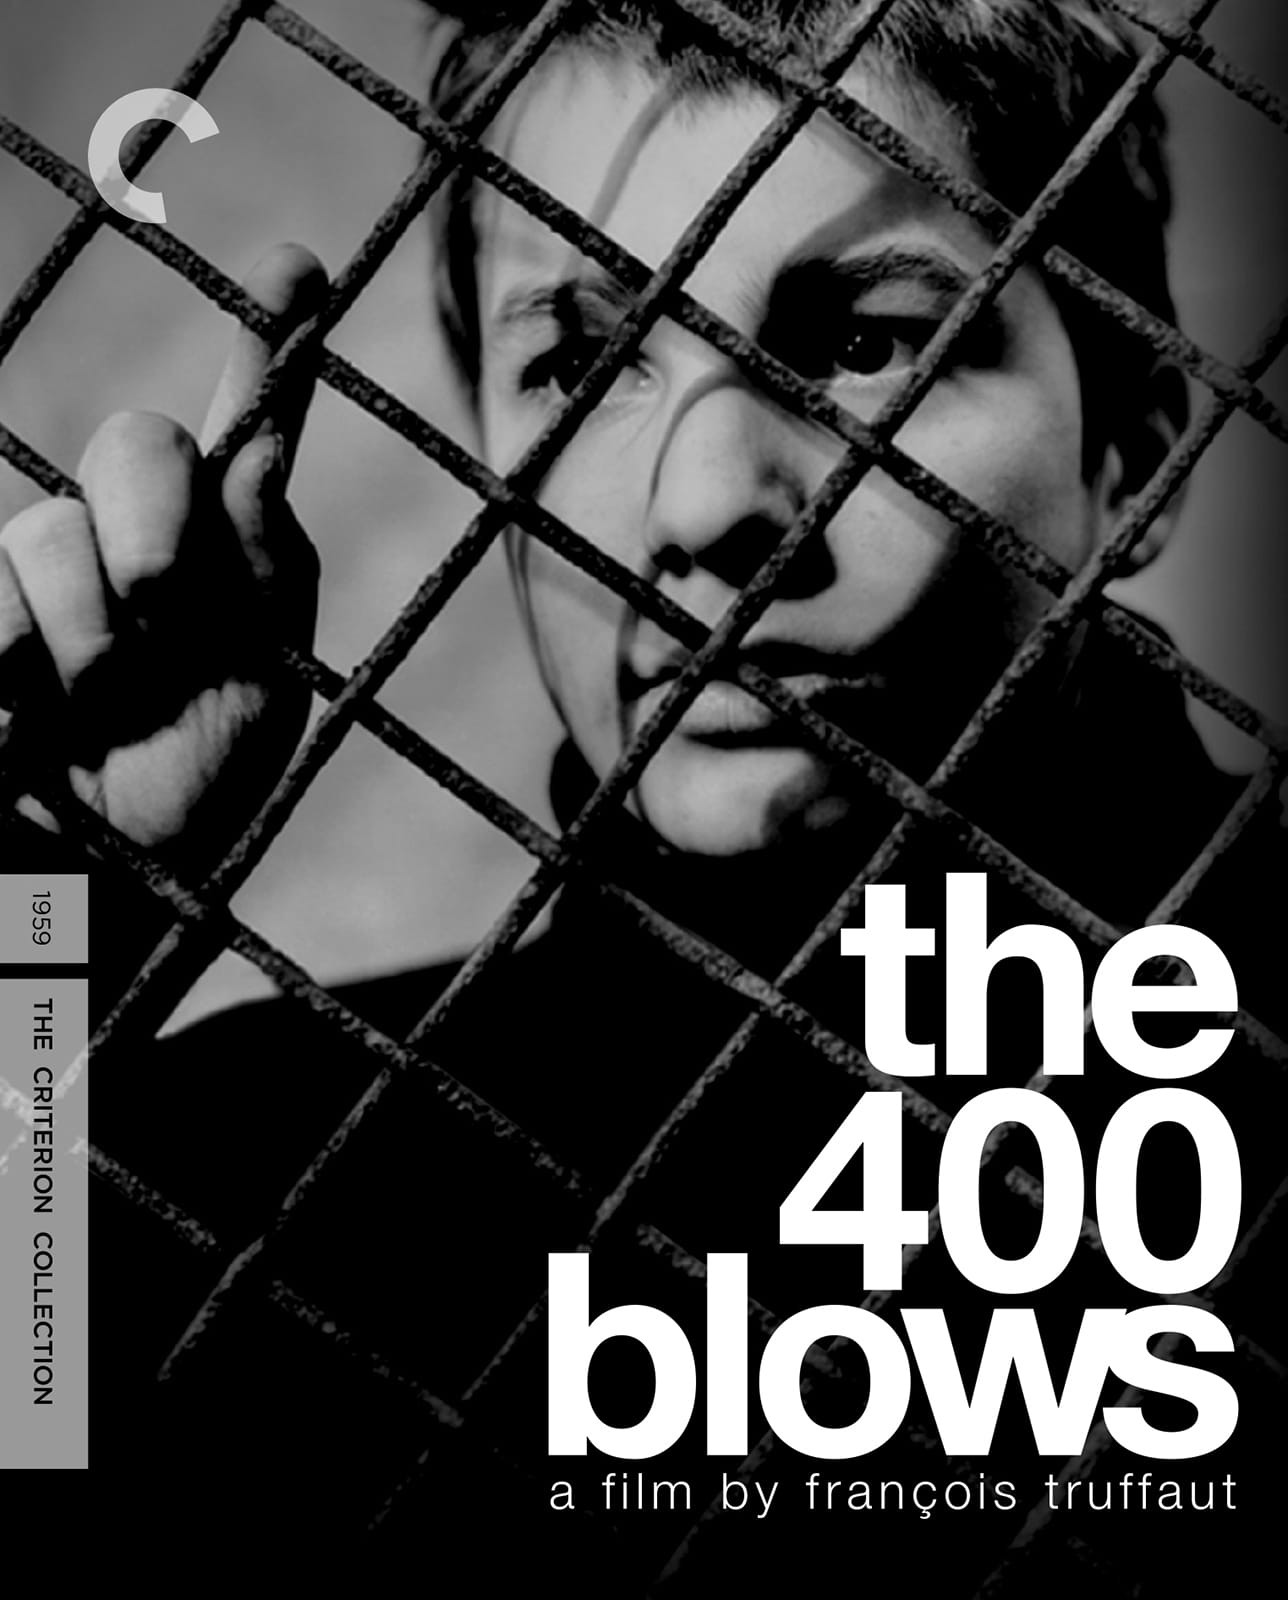 the 400 blows (1959) | the criterion collection